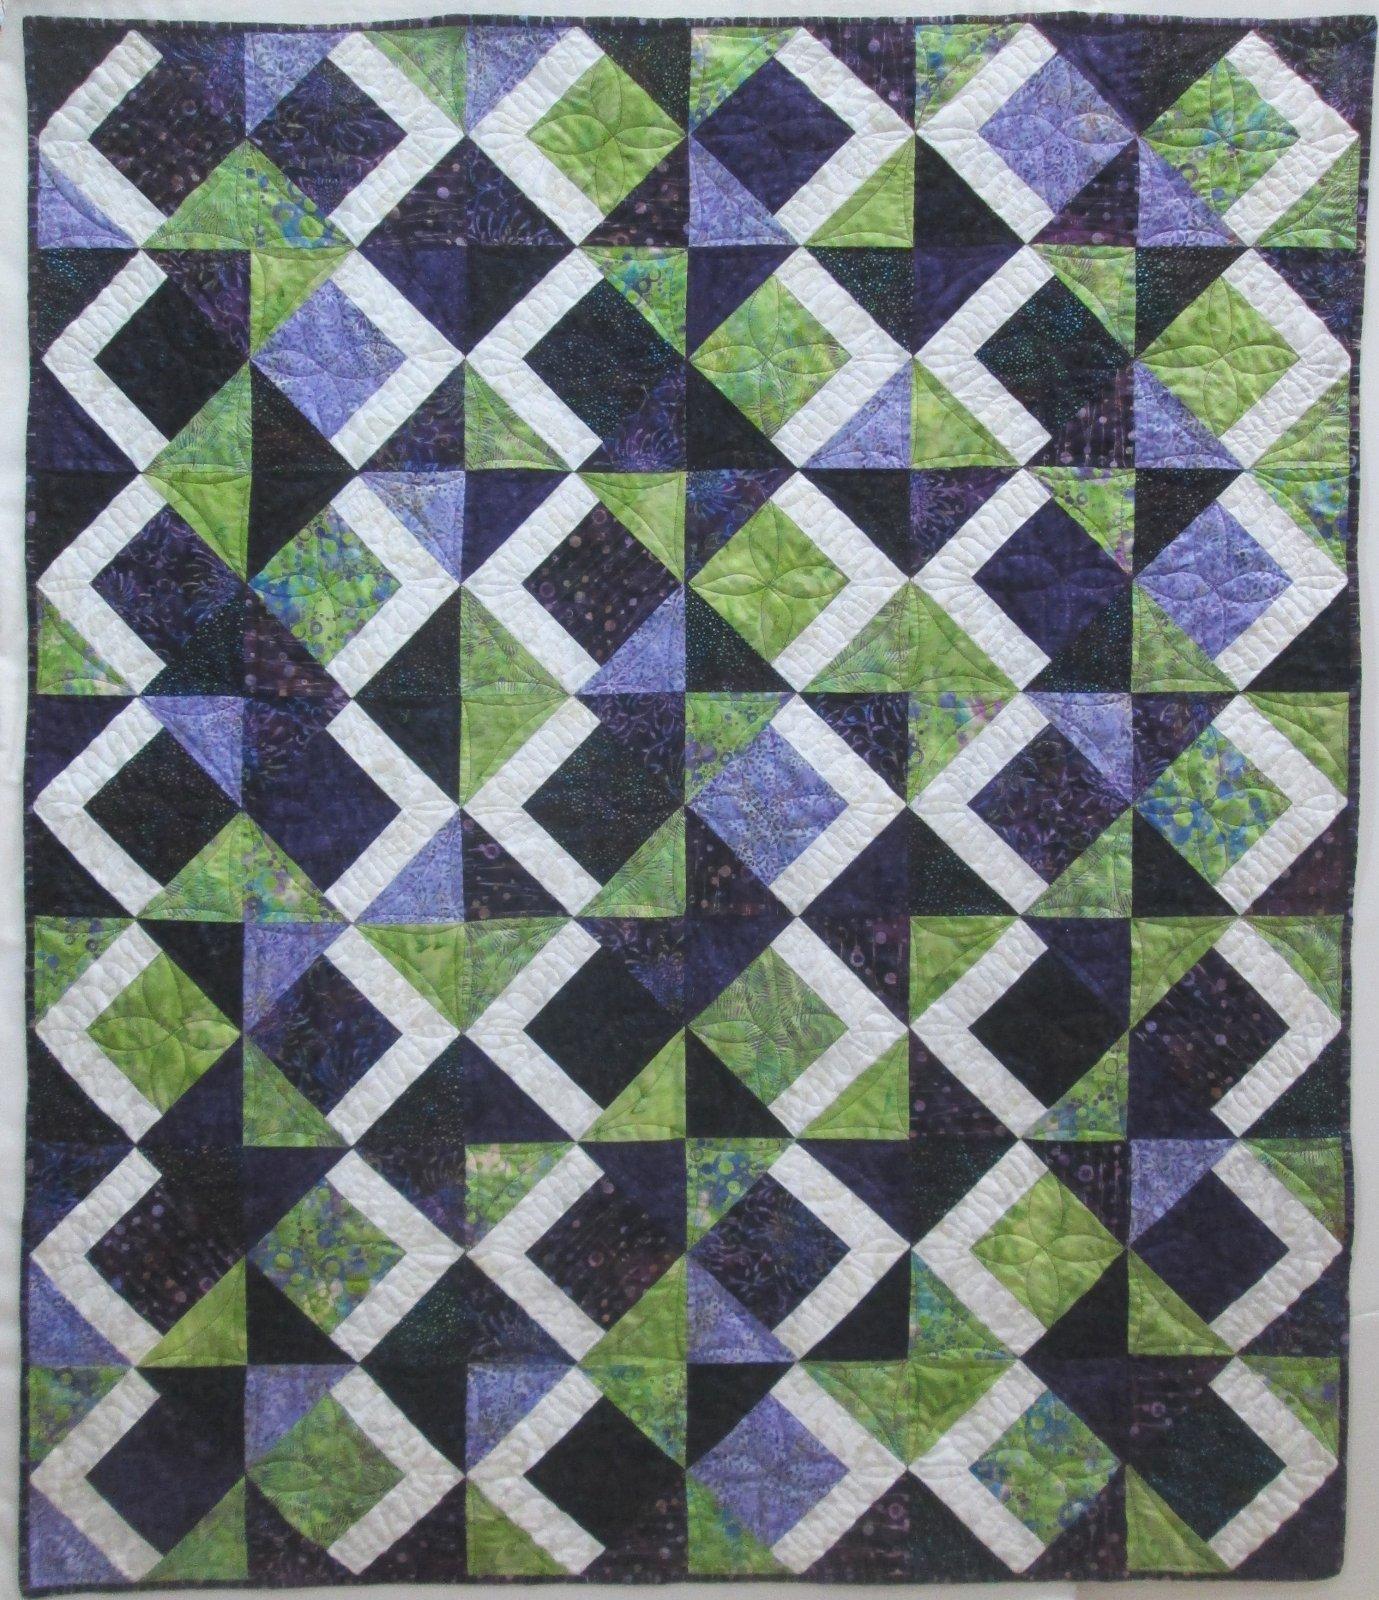 Hoffman Bali Chop Purple/Green Tai Chi Quilt Kit 49 by 57 Includes Binidng